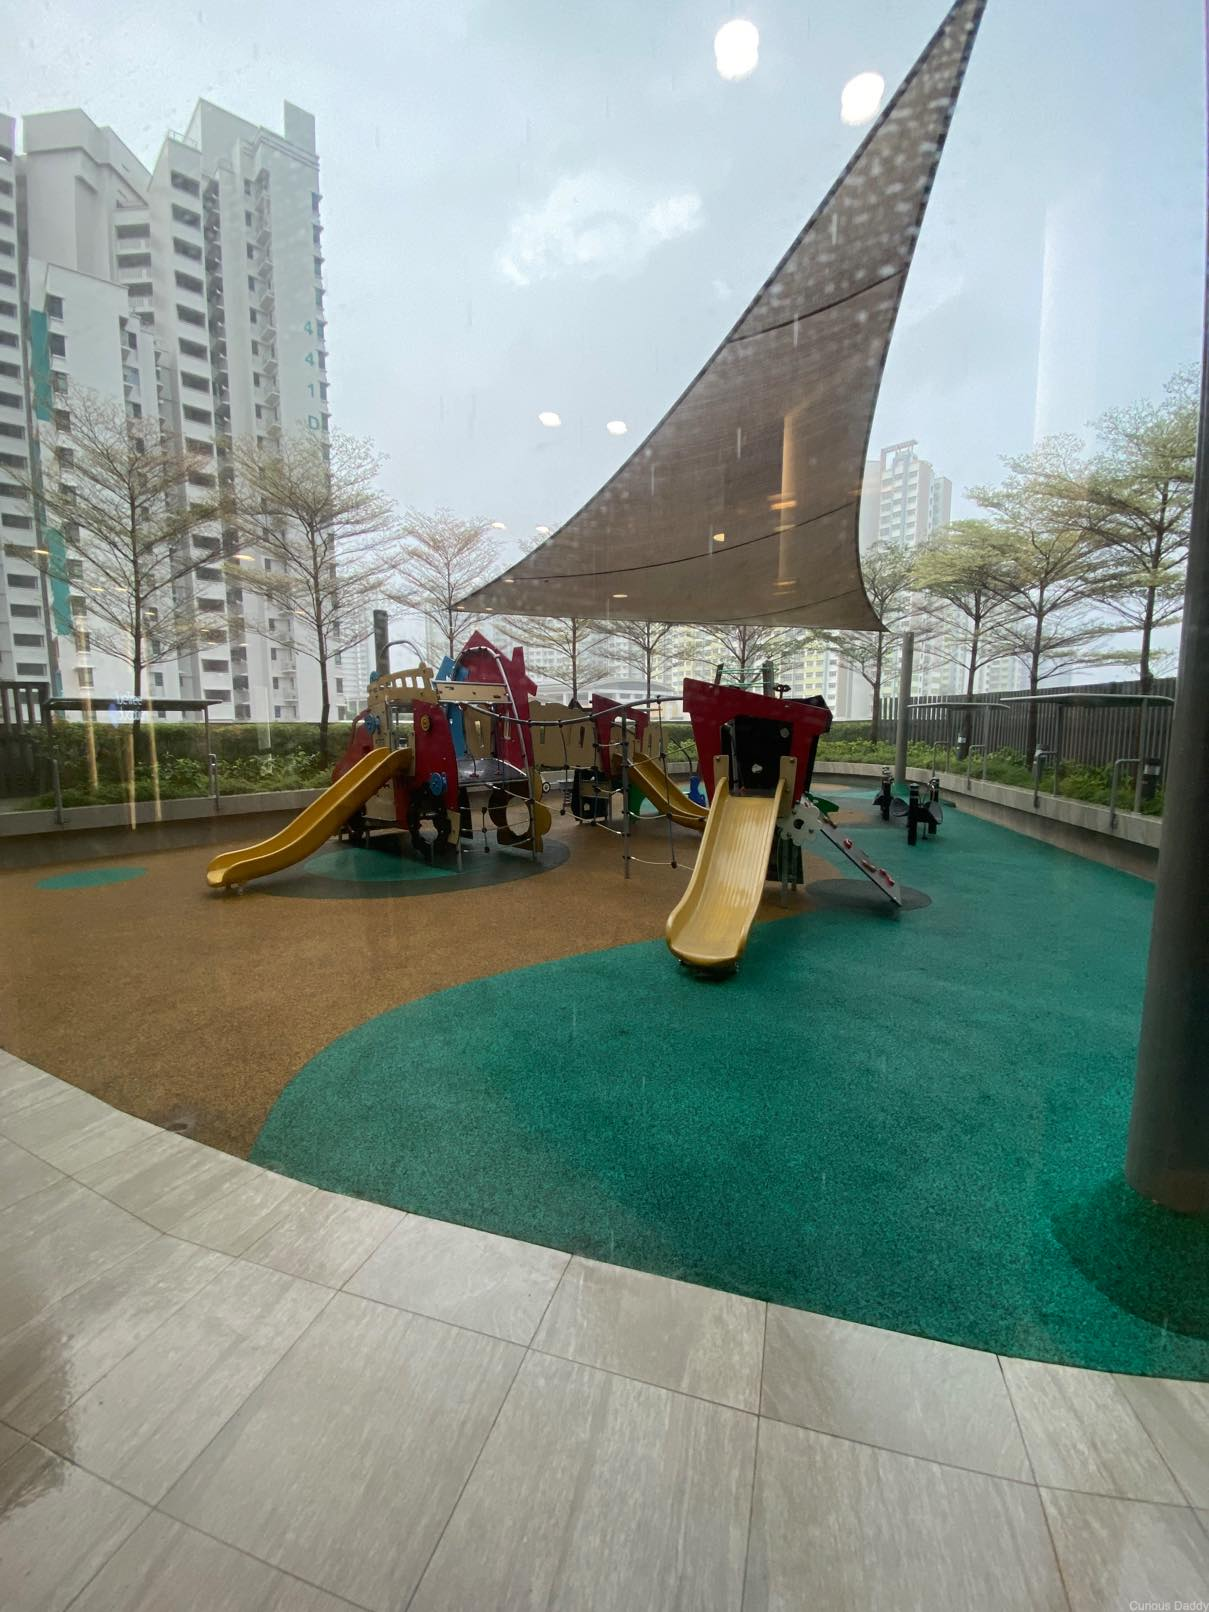 seletar mall playground